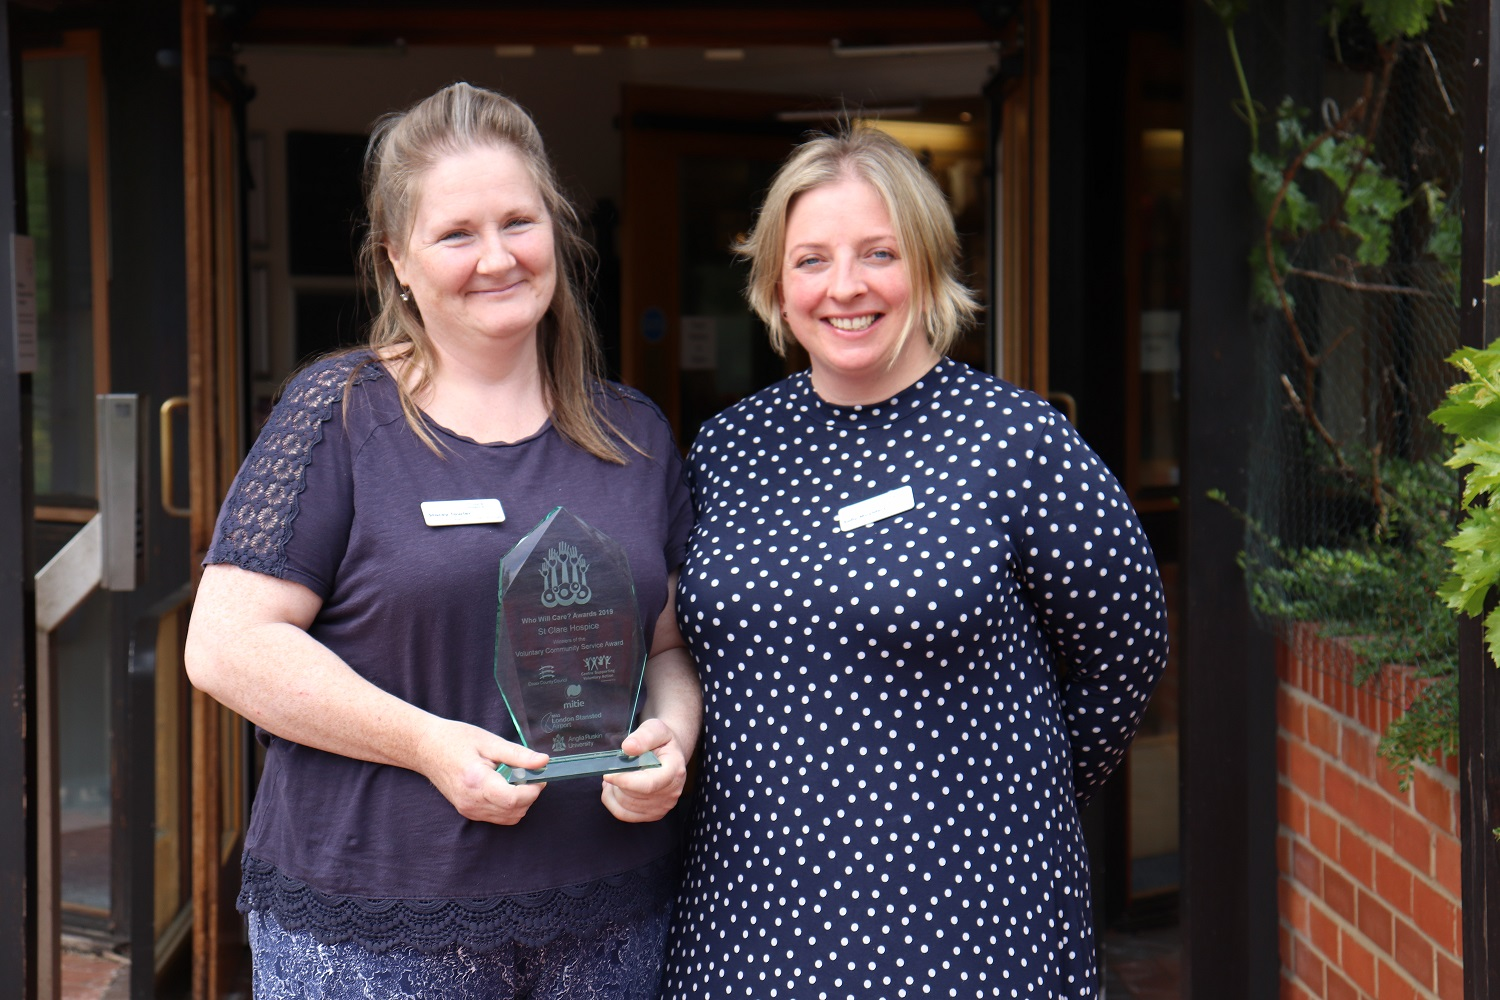 Hospice's community project wins prestigious regional award